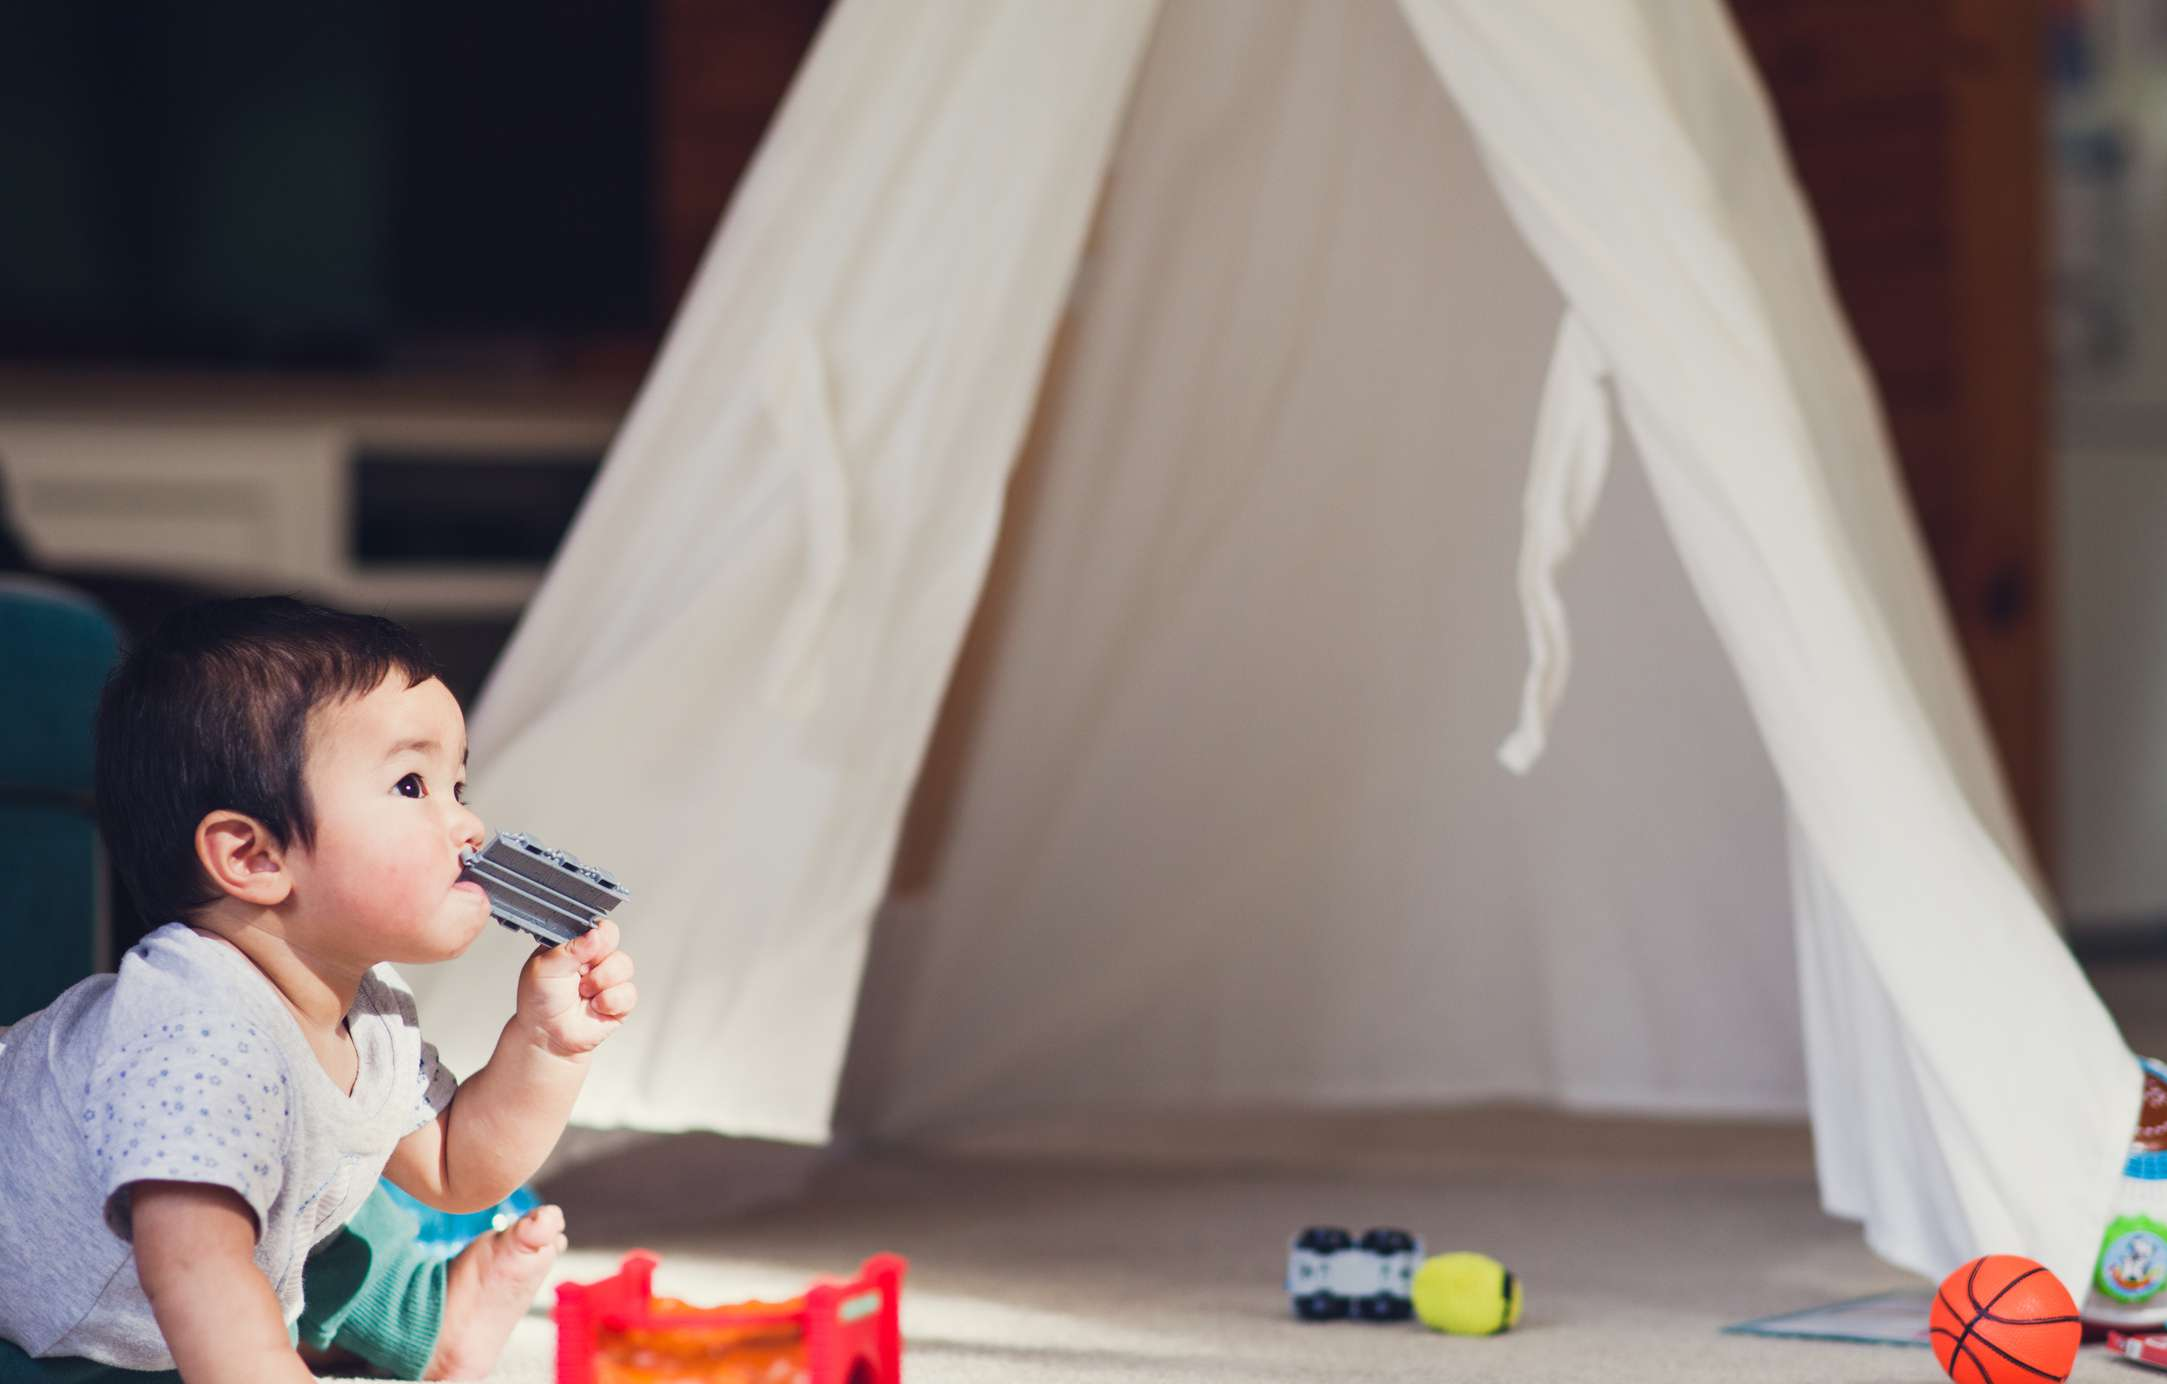 A baby sitting on the floor chewing on a toy